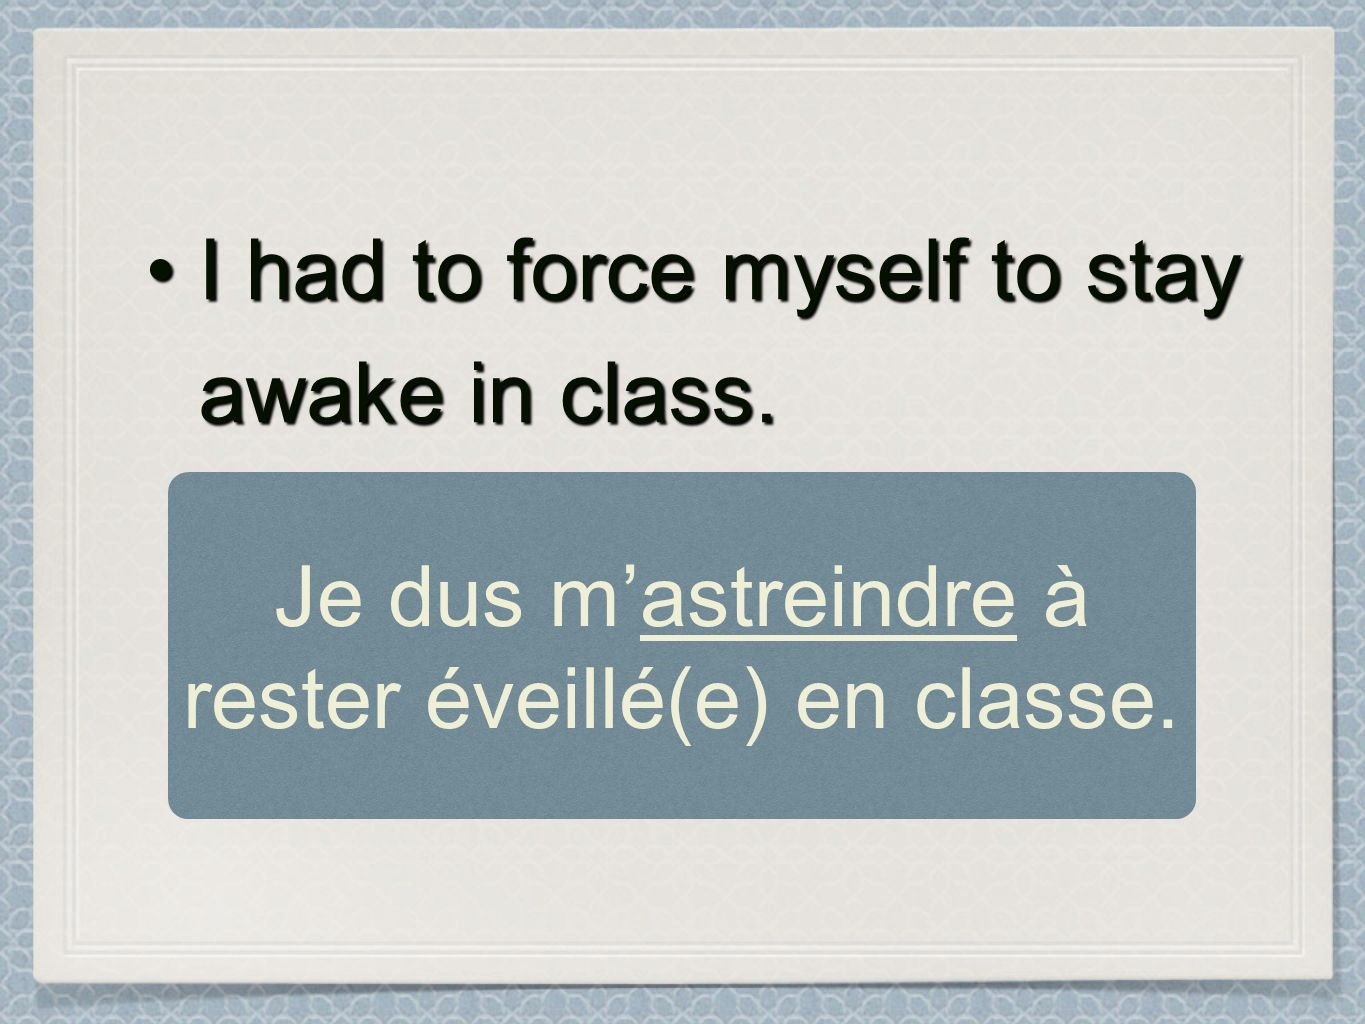 I had to force myself to stay awake in class.I had to force myself to stay awake in class. Je dus mastreindre à rester éveillé(e) en classe.